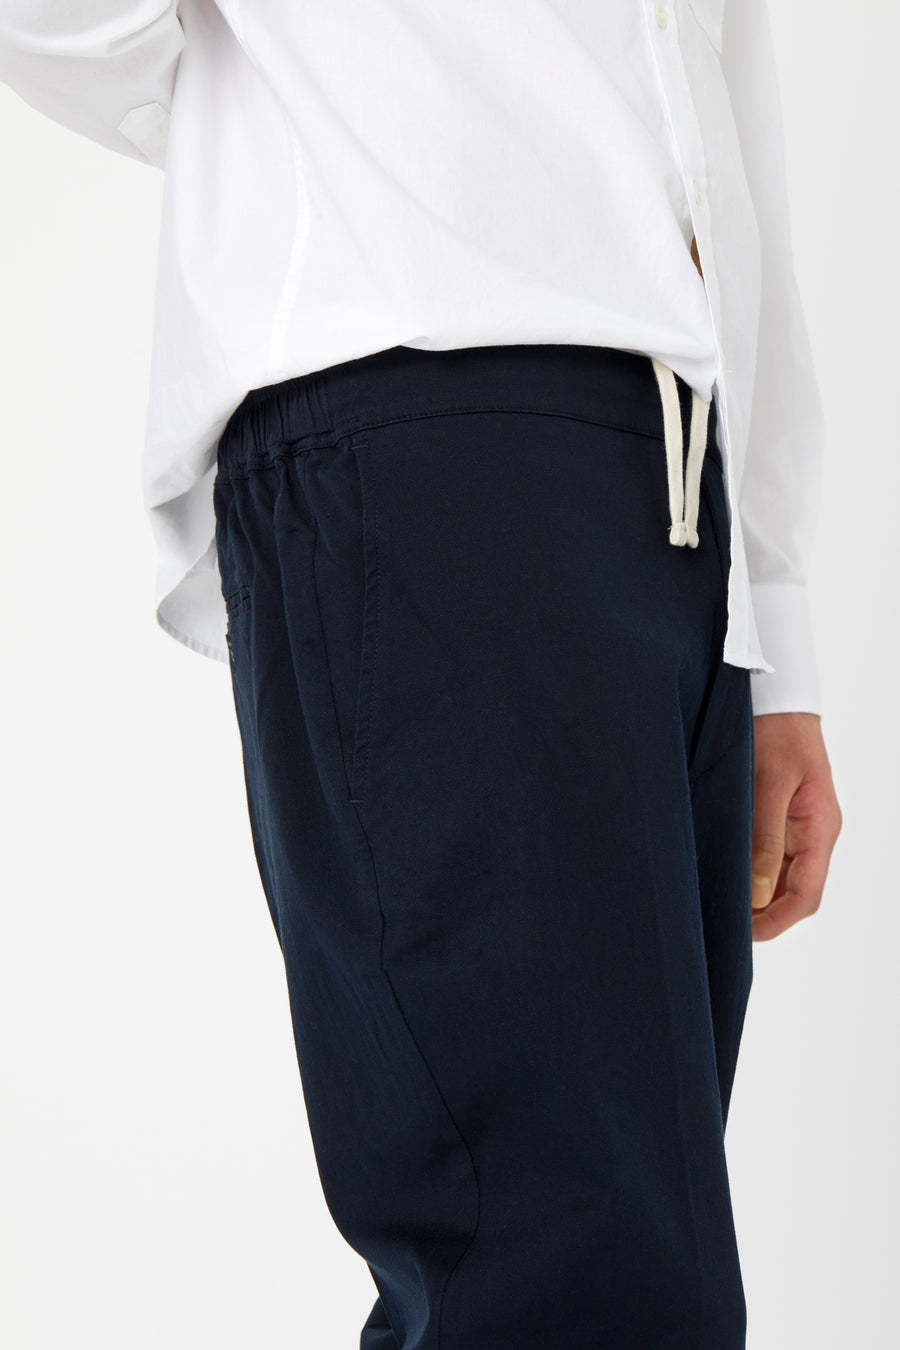 ILLUSION TROUSER - Fine Texture